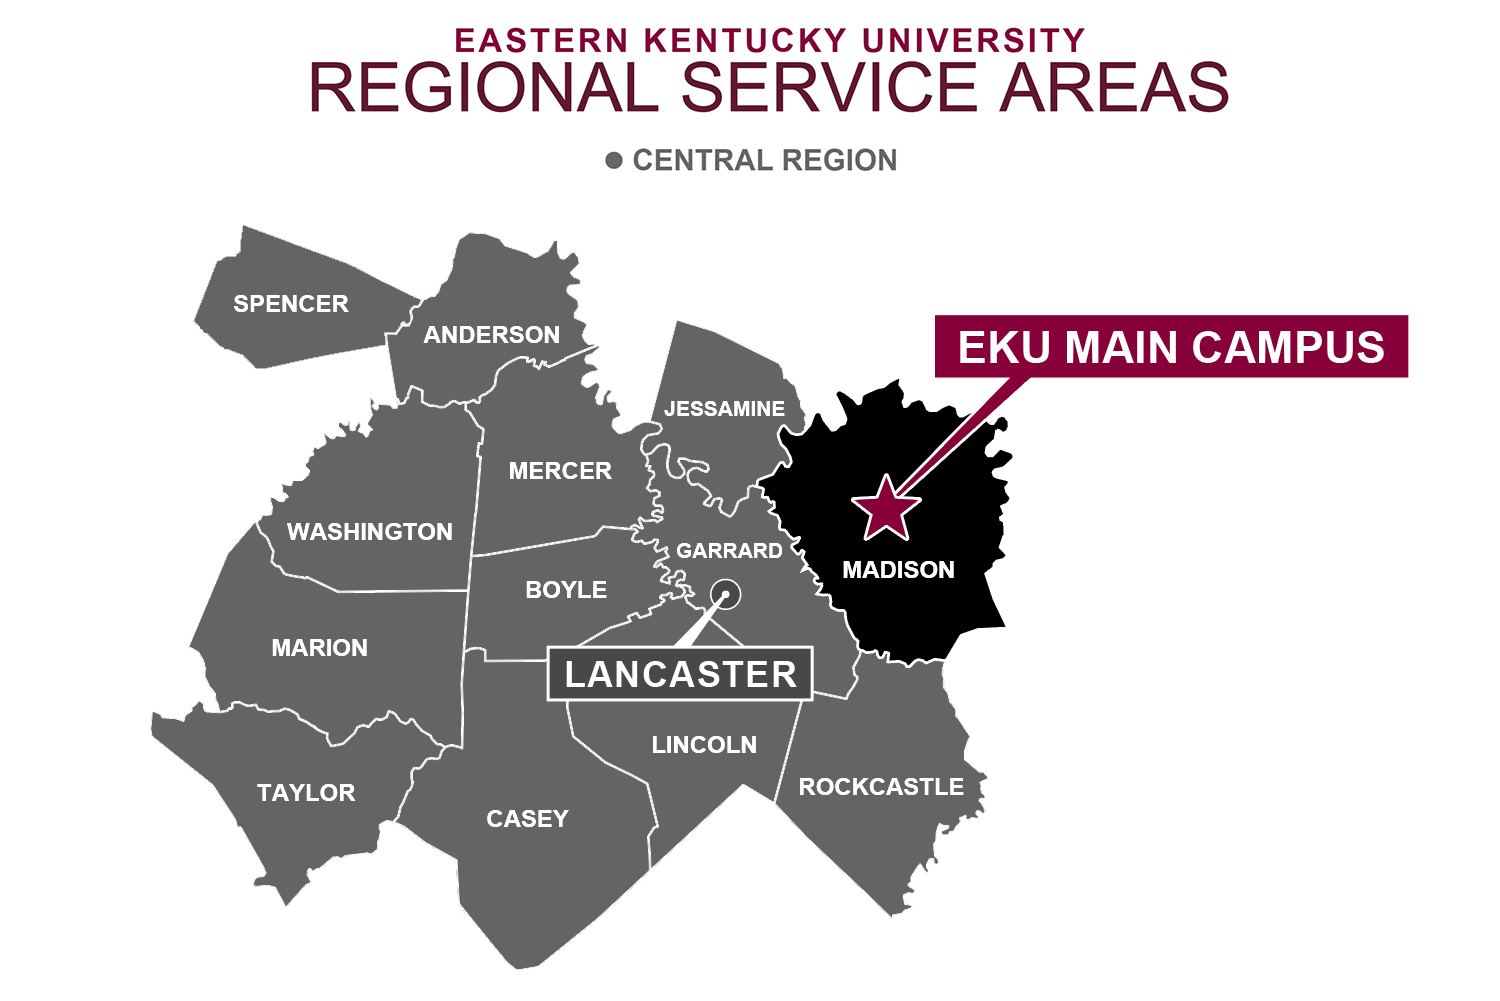 EKU Regional Service Area Central Region